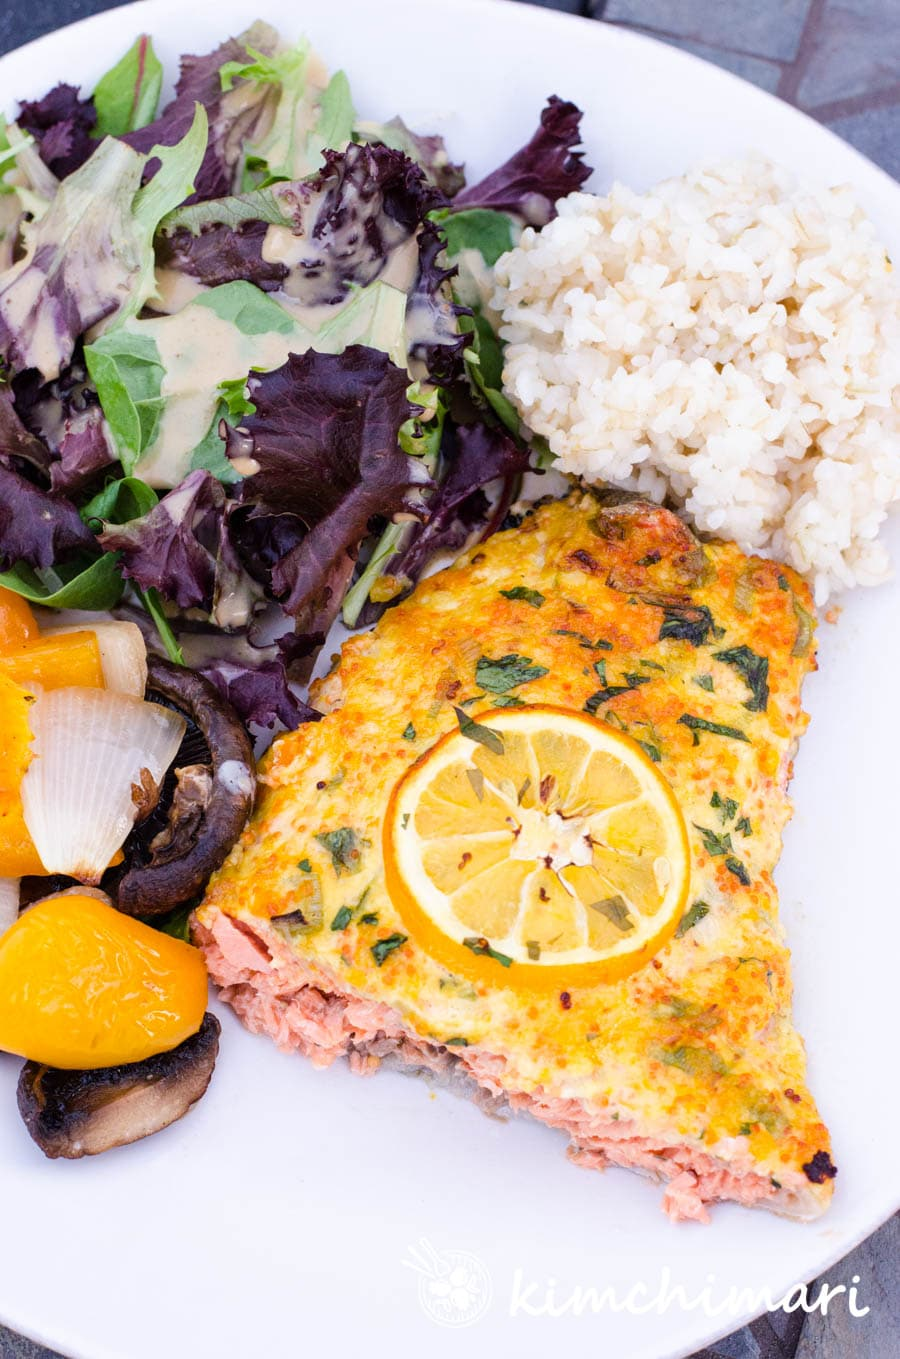 a plate of rice, salmon, salad and grilled vegetables